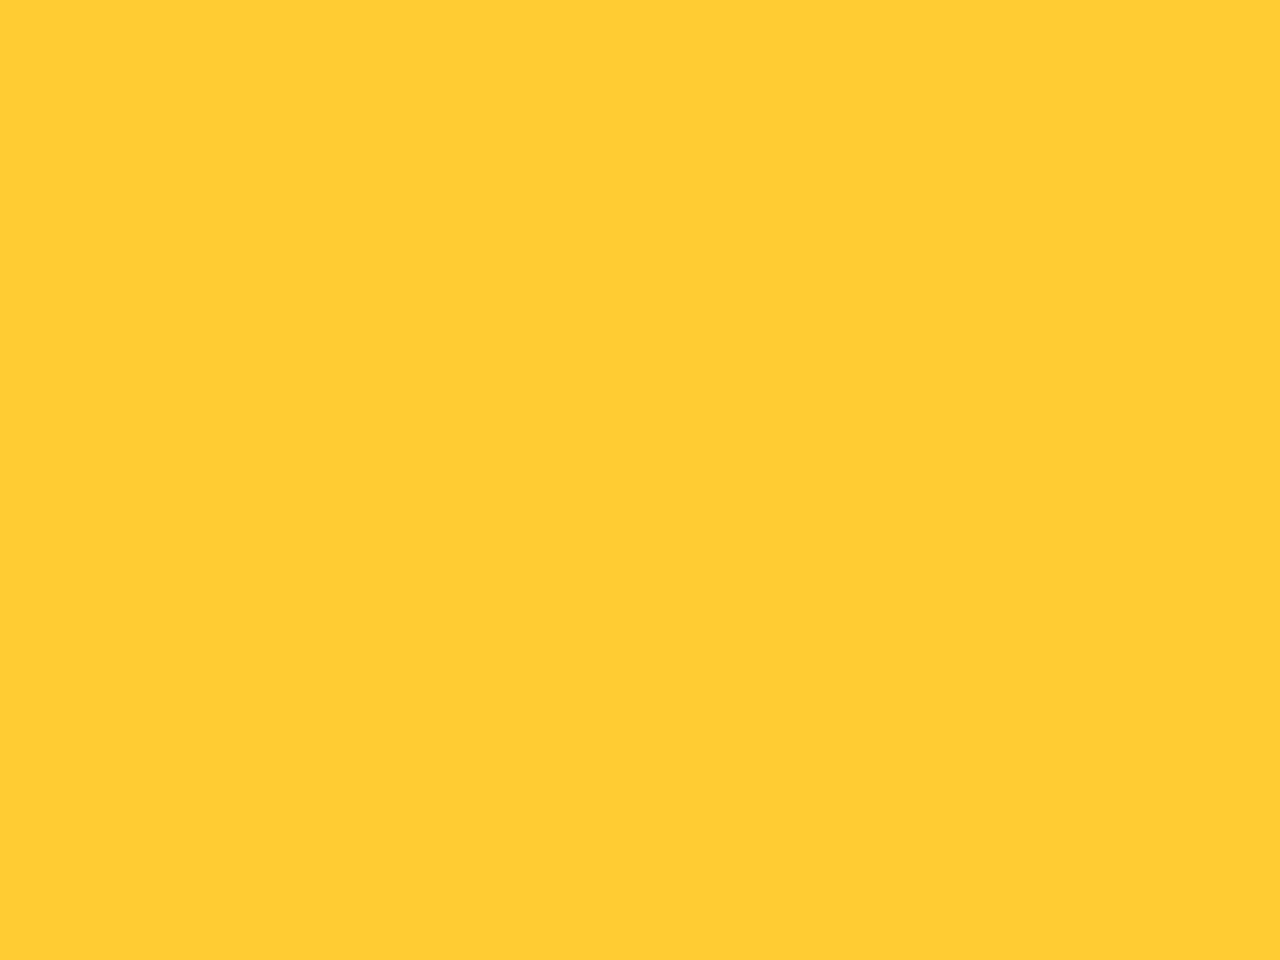 1280x960 Sunglow Solid Color Background